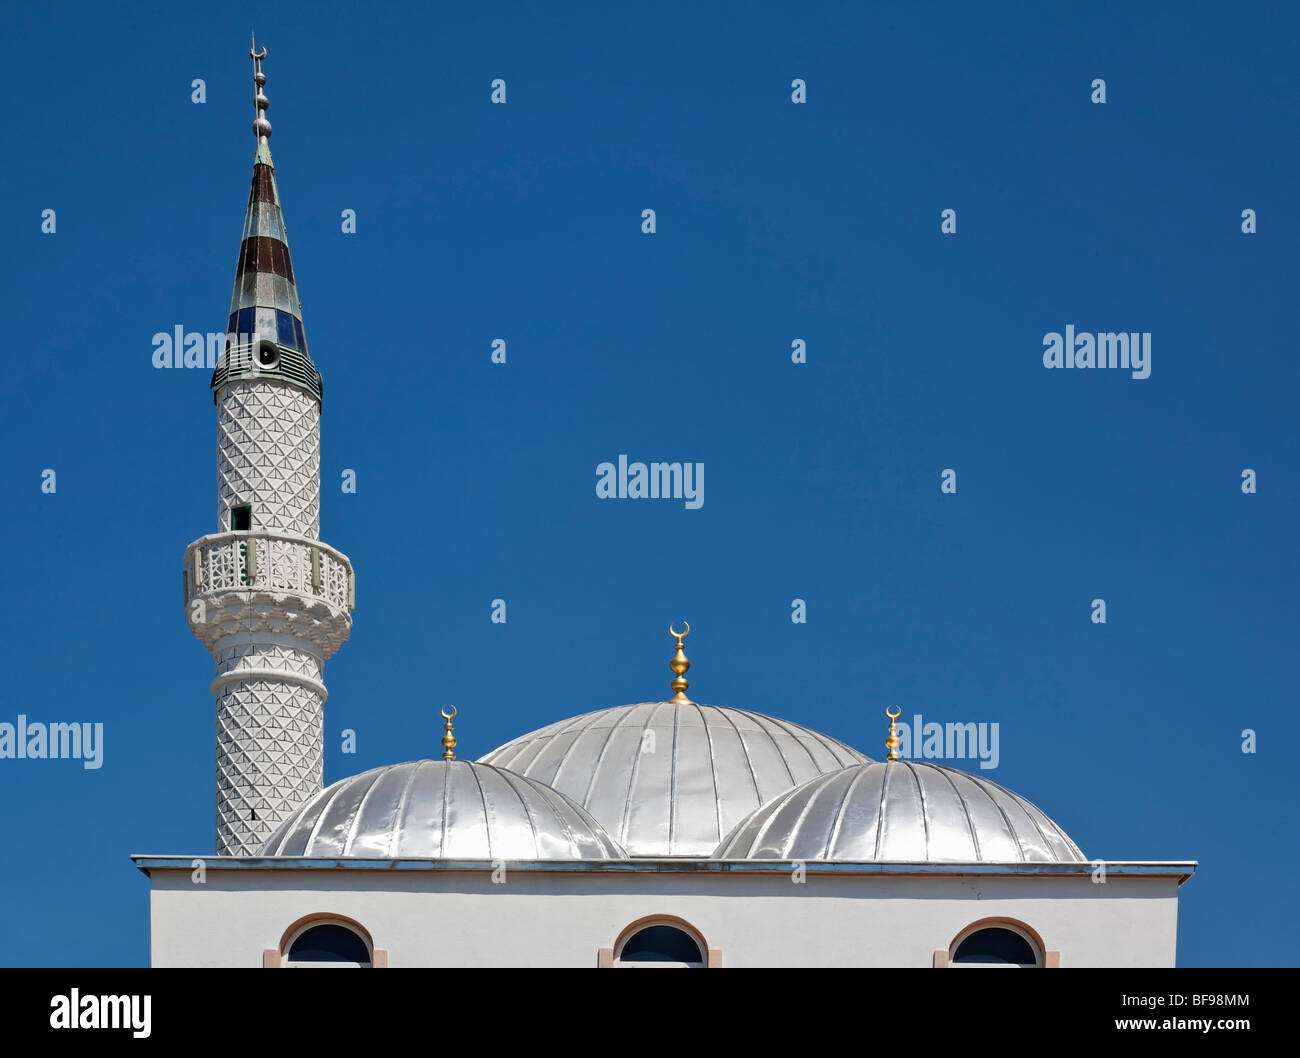 Roof detail on the Mosque in Kalkan, Turkey. - Stock Image